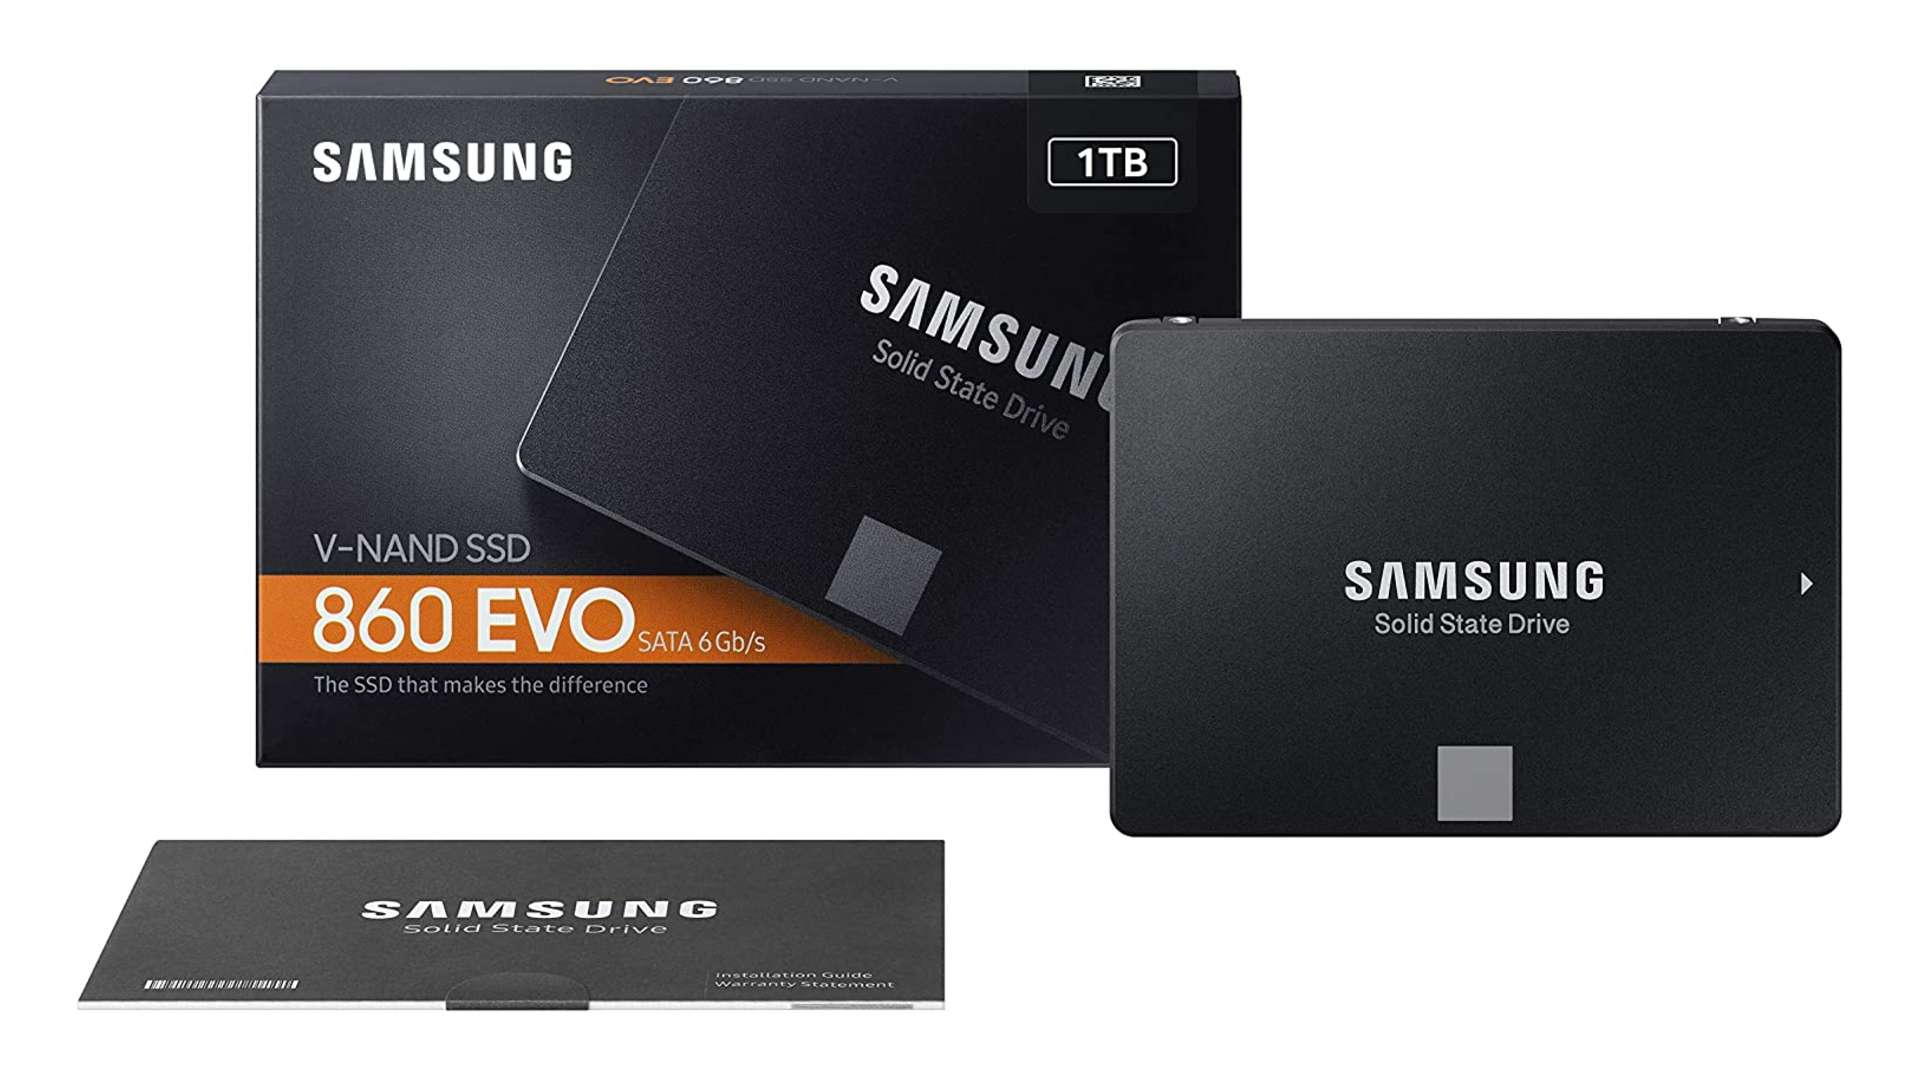 Samsung's high-capacity 860 Evo SSD is up to 45% cheaper